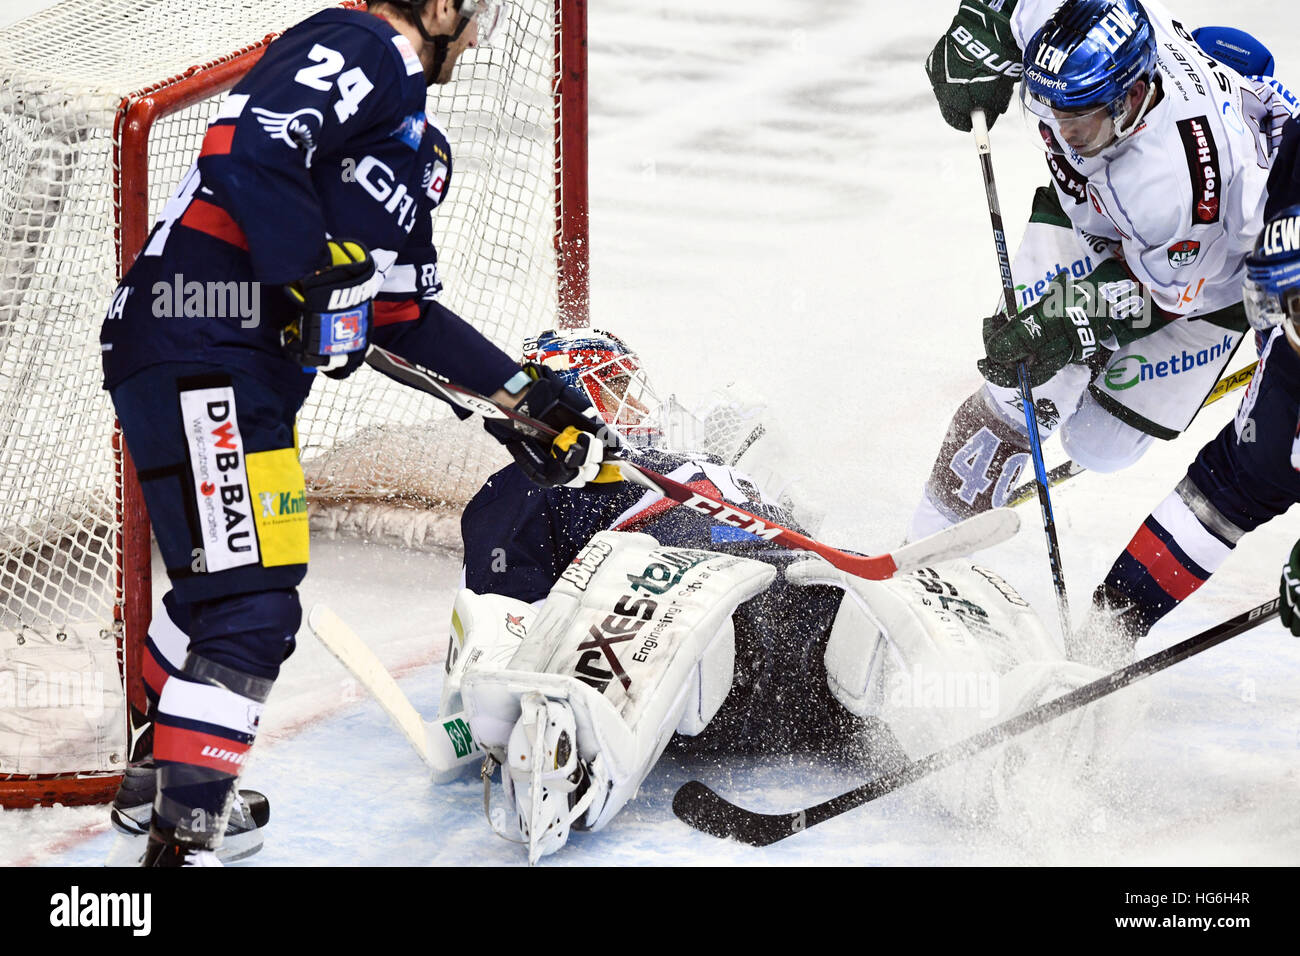 Berlin's Andre Rankel (L) and goalkeeper Petri Vehanen and Augsburg's Even Trupp vie for the puck during - Stock Image